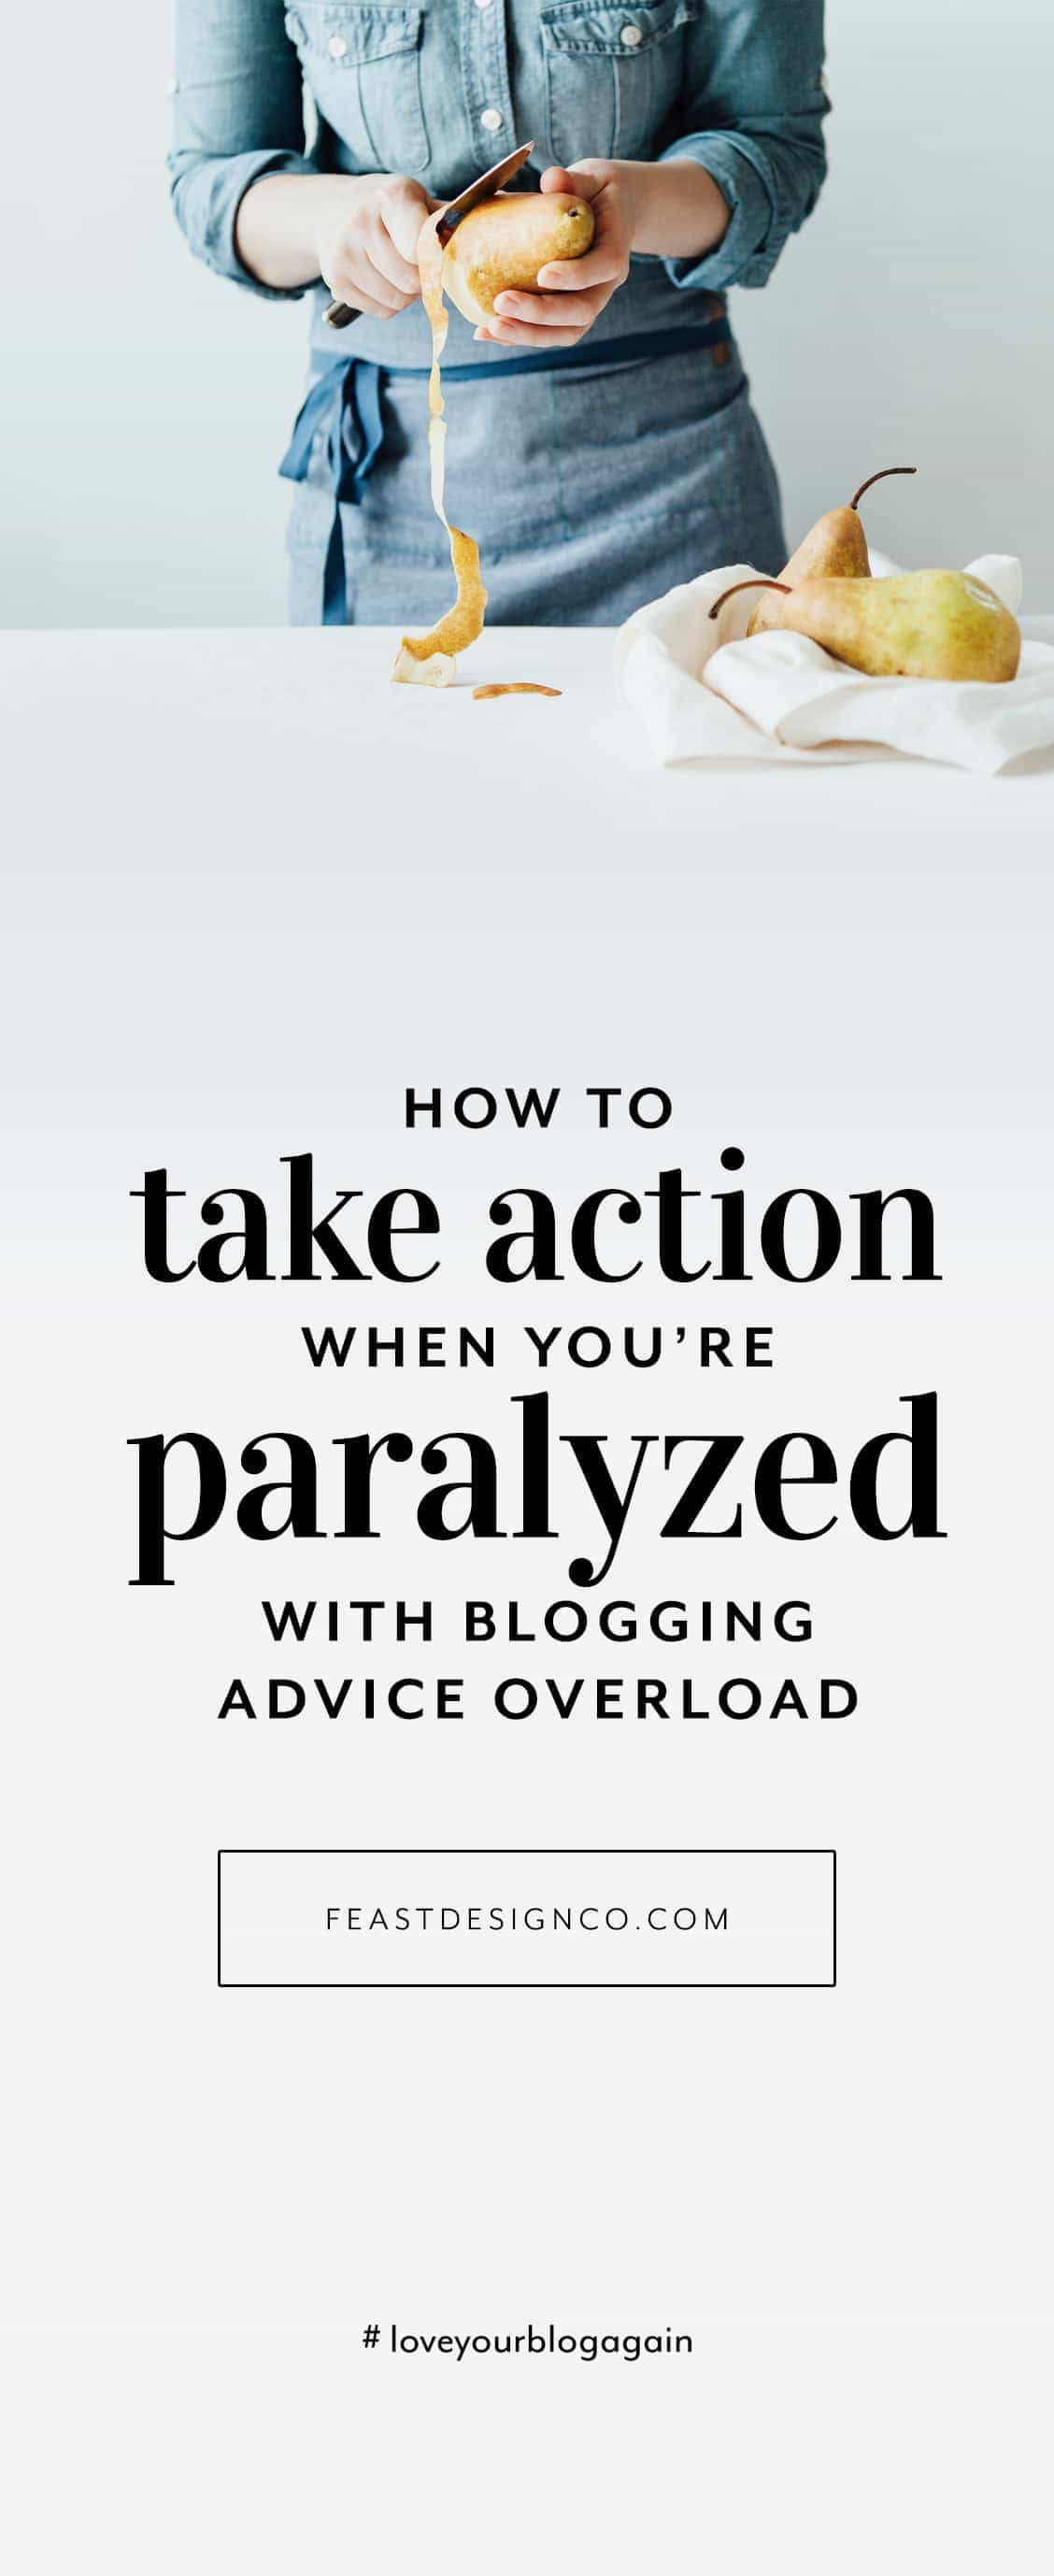 HowToTakeActionWhenParalyzed